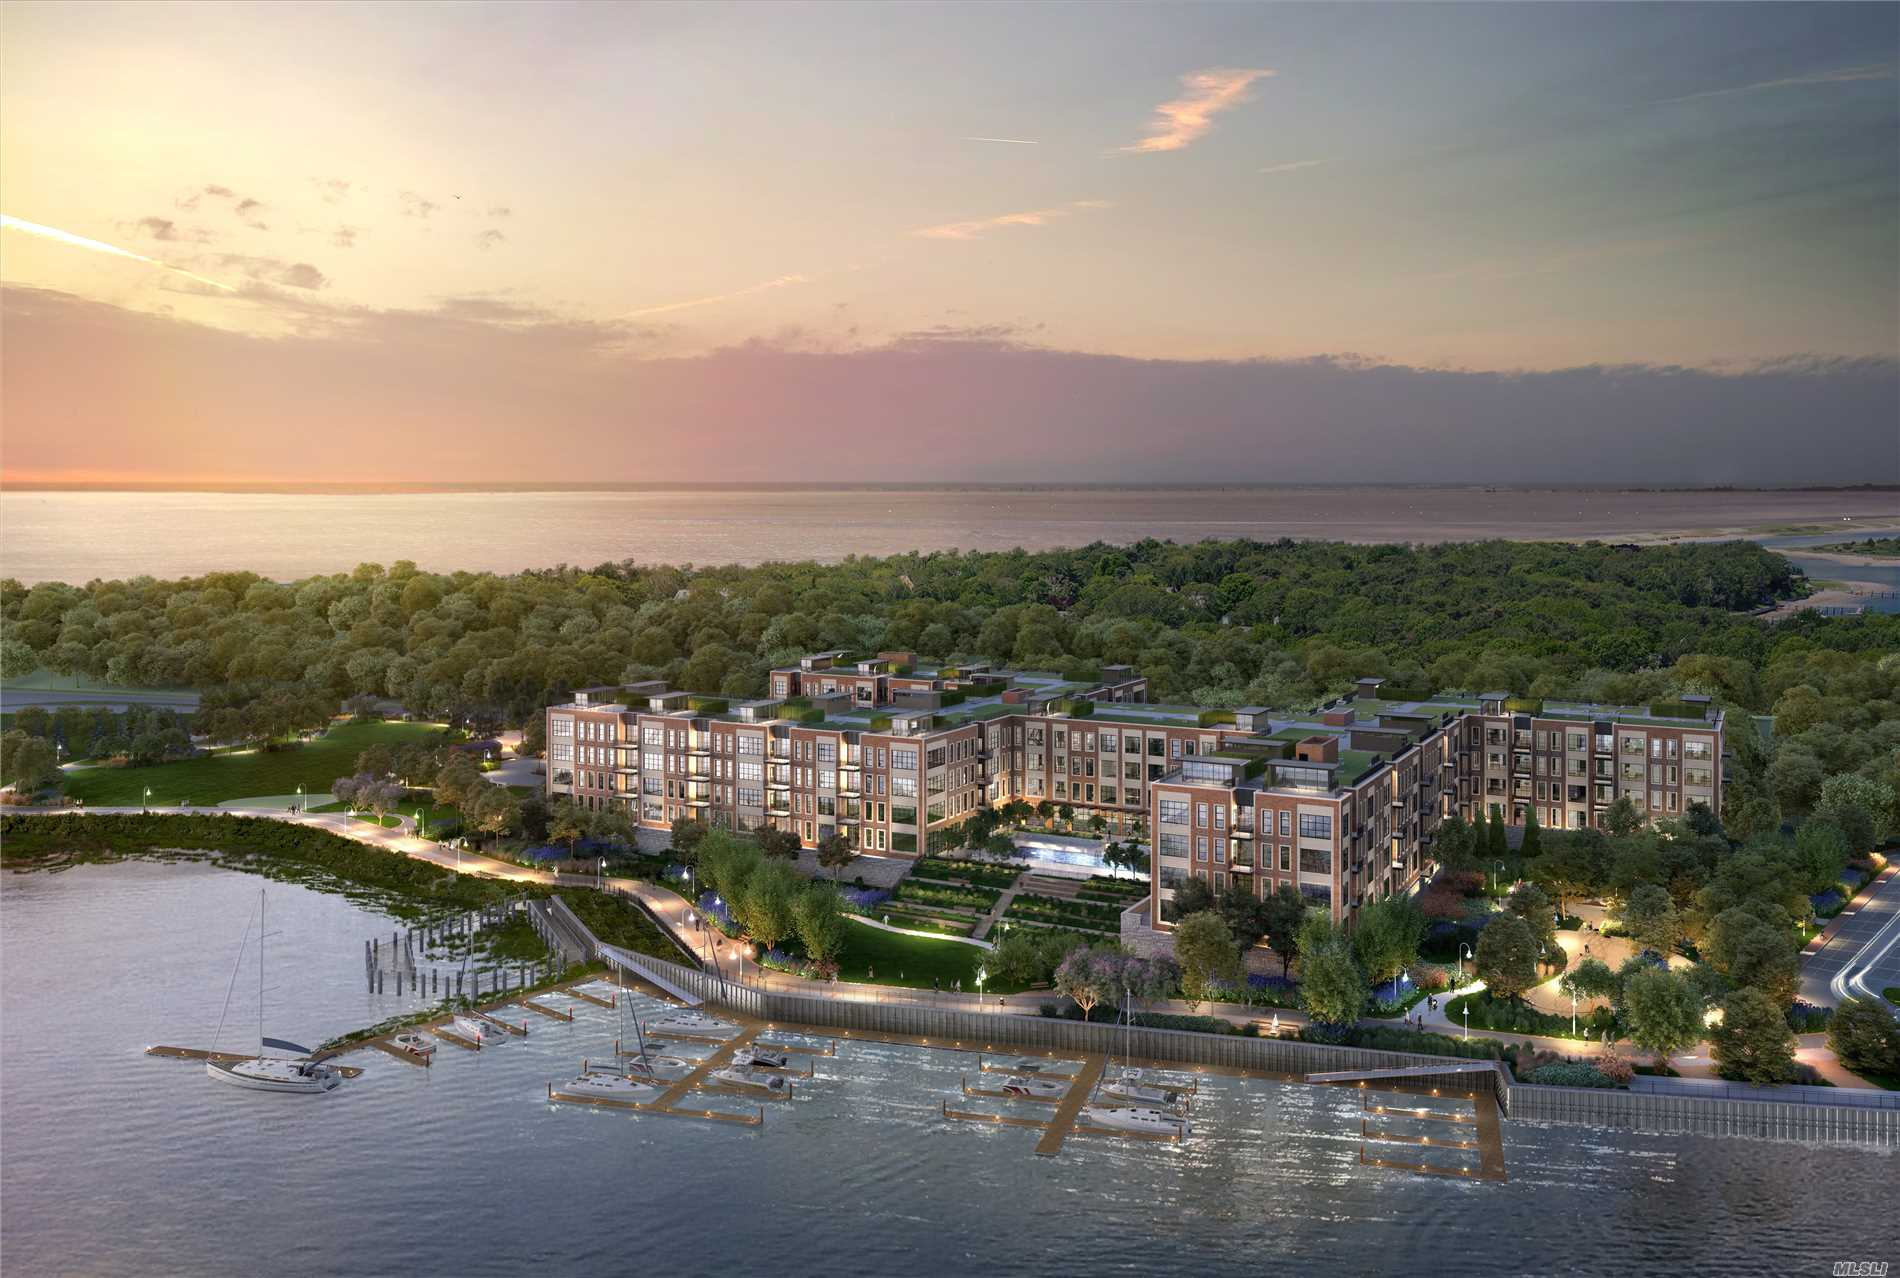 Property for sale at 100 Garvies Point Road # 1234, Glen Cove NY 11542, Glen Cove,  New York 11542